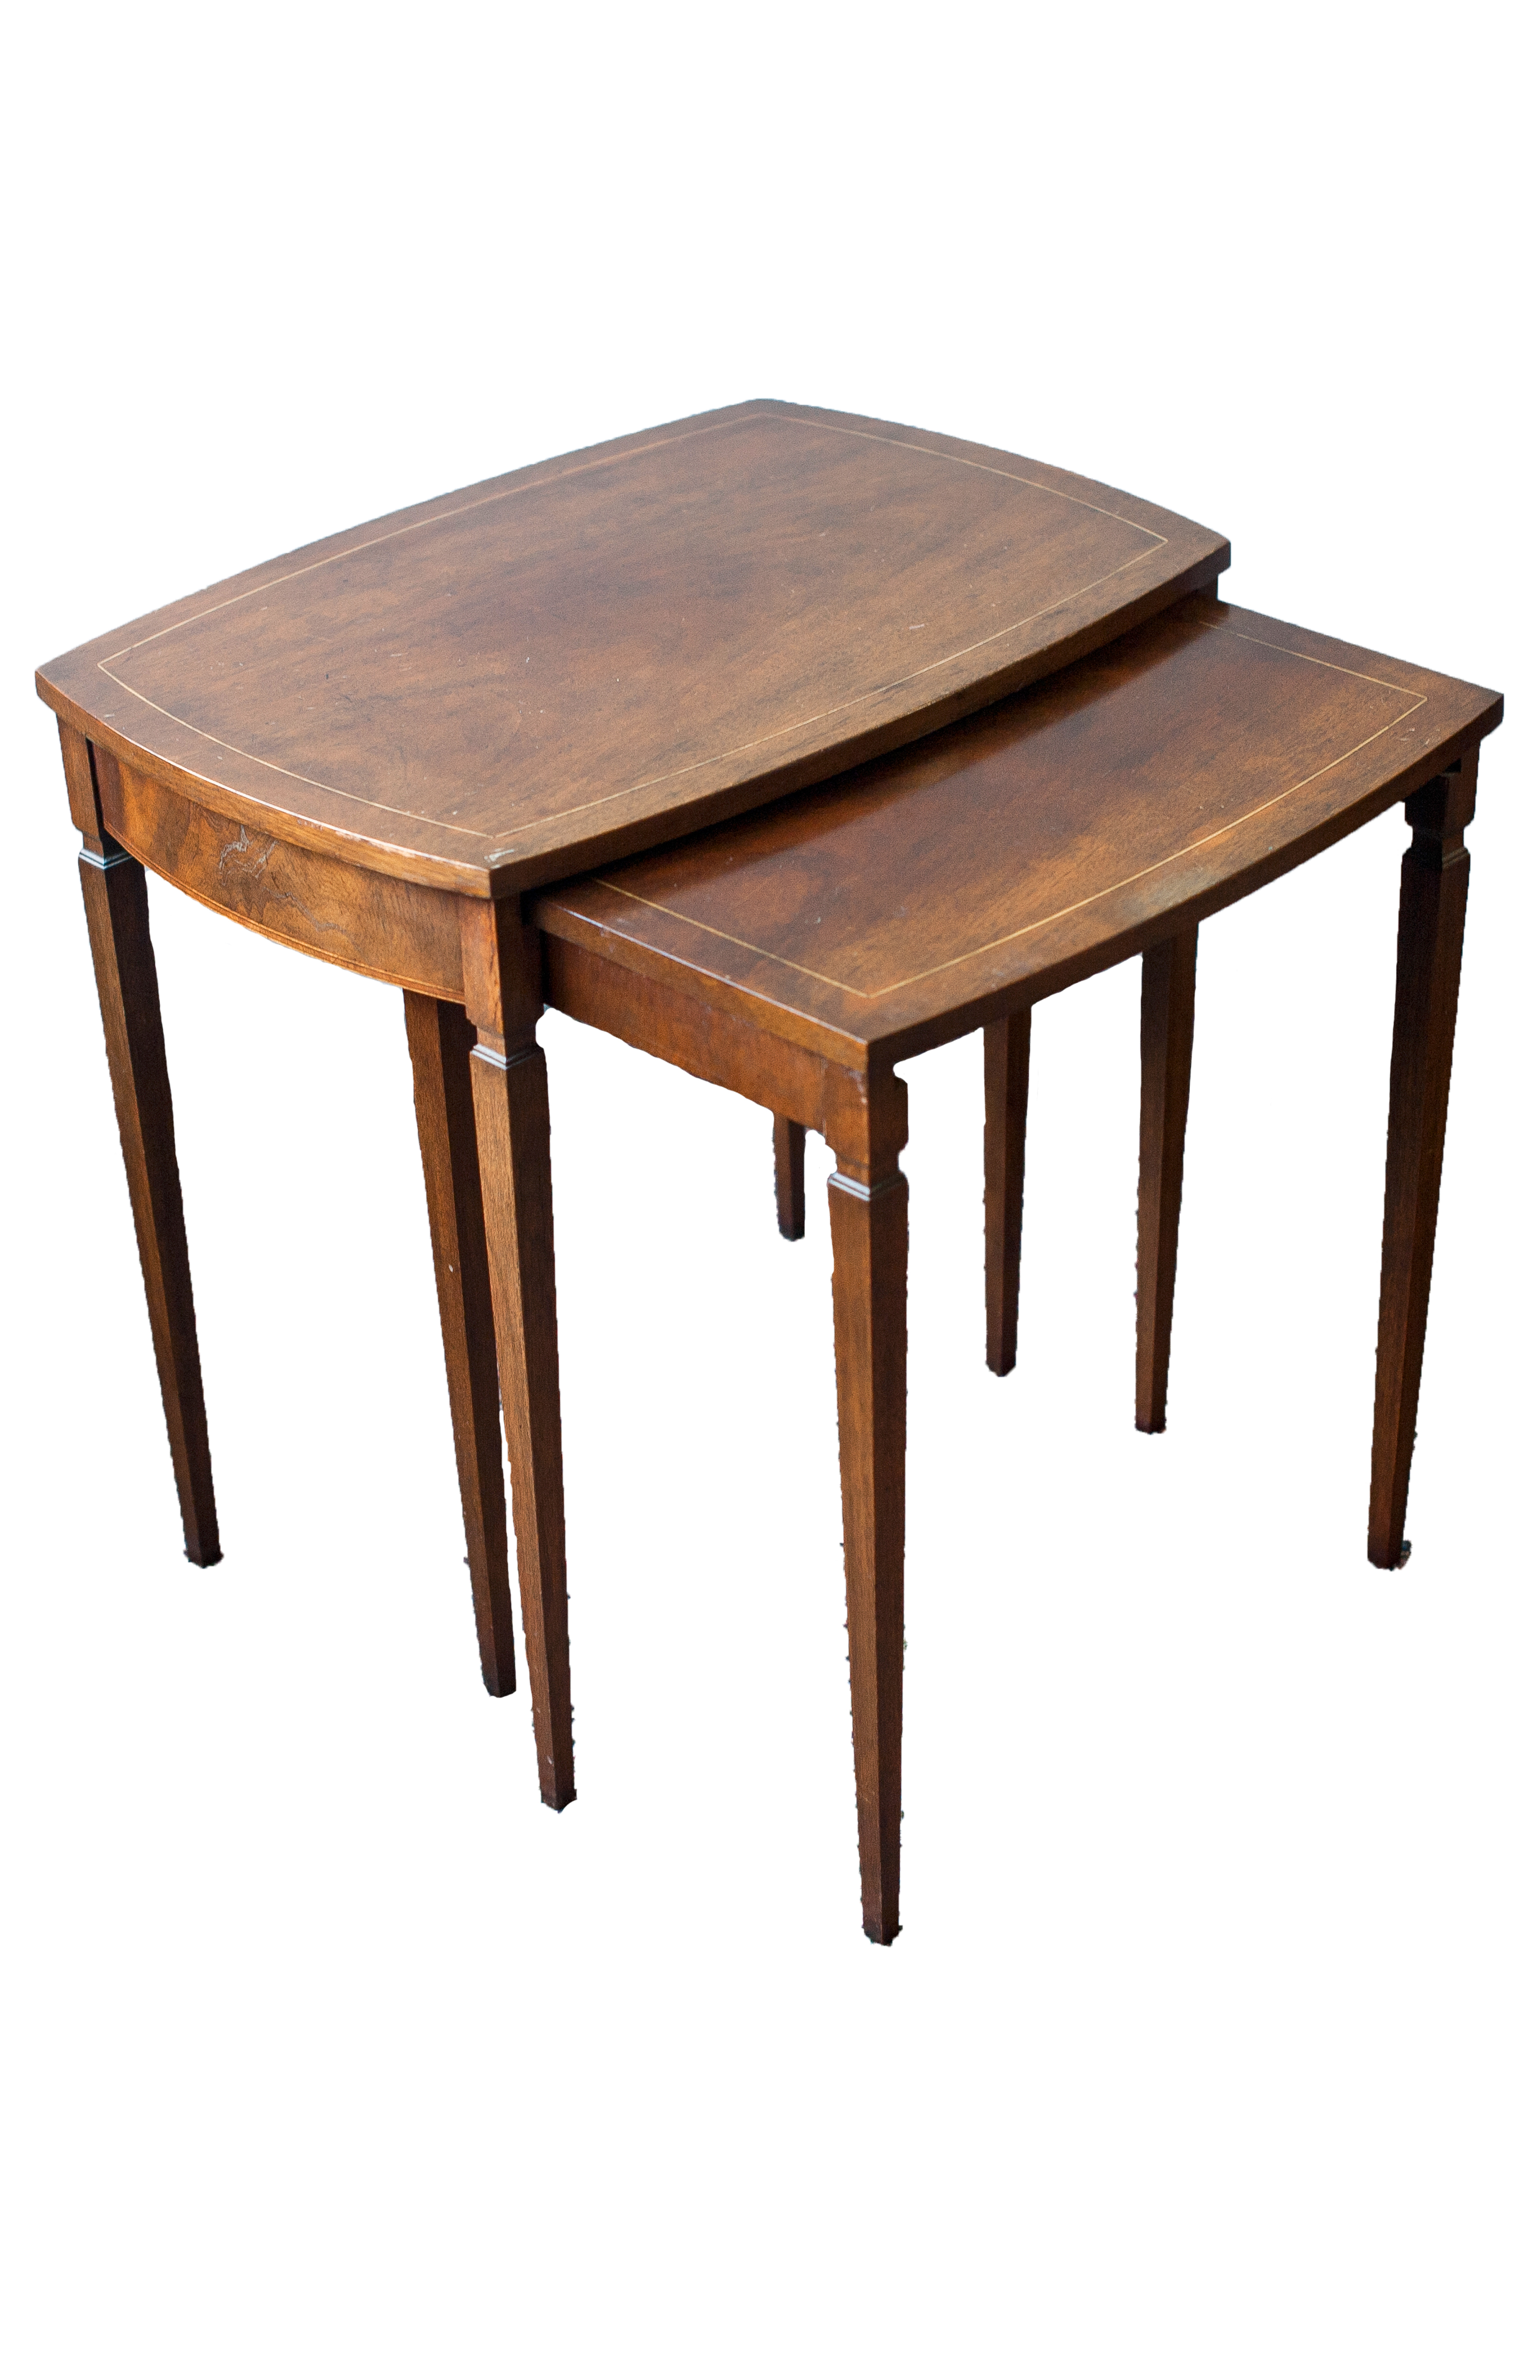 Baker Mid Century Walnut Nesting Tables A Pair Chairish. Full resolution  image, nominally Width 3300 Height 5100 pixels, image with #2D170E.